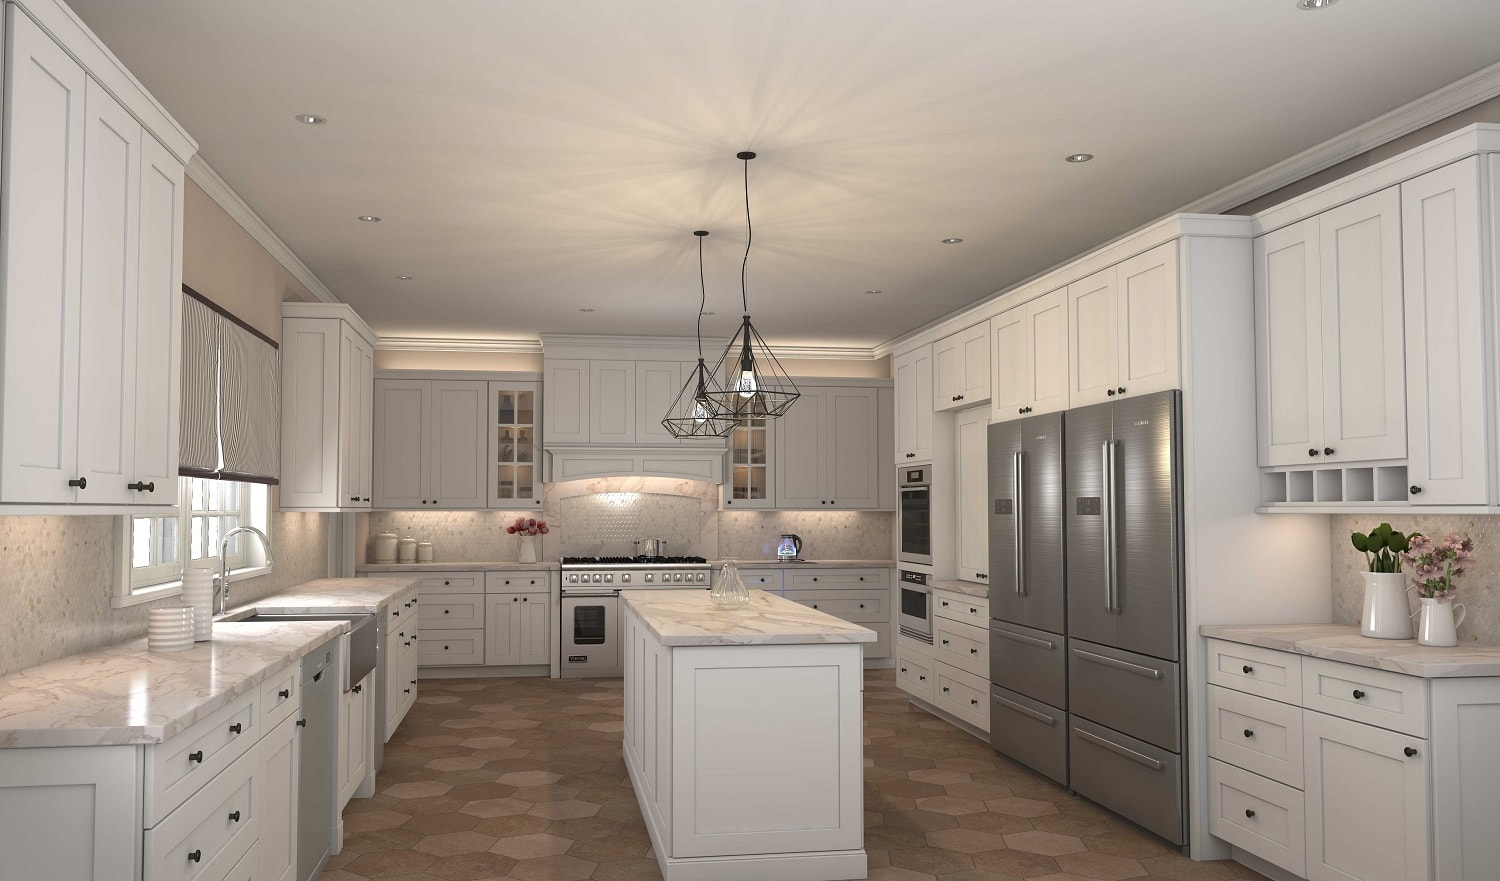 Ready to assemble kitchen cabinets kitchen cabinets modena white shaker solutioingenieria Choice Image